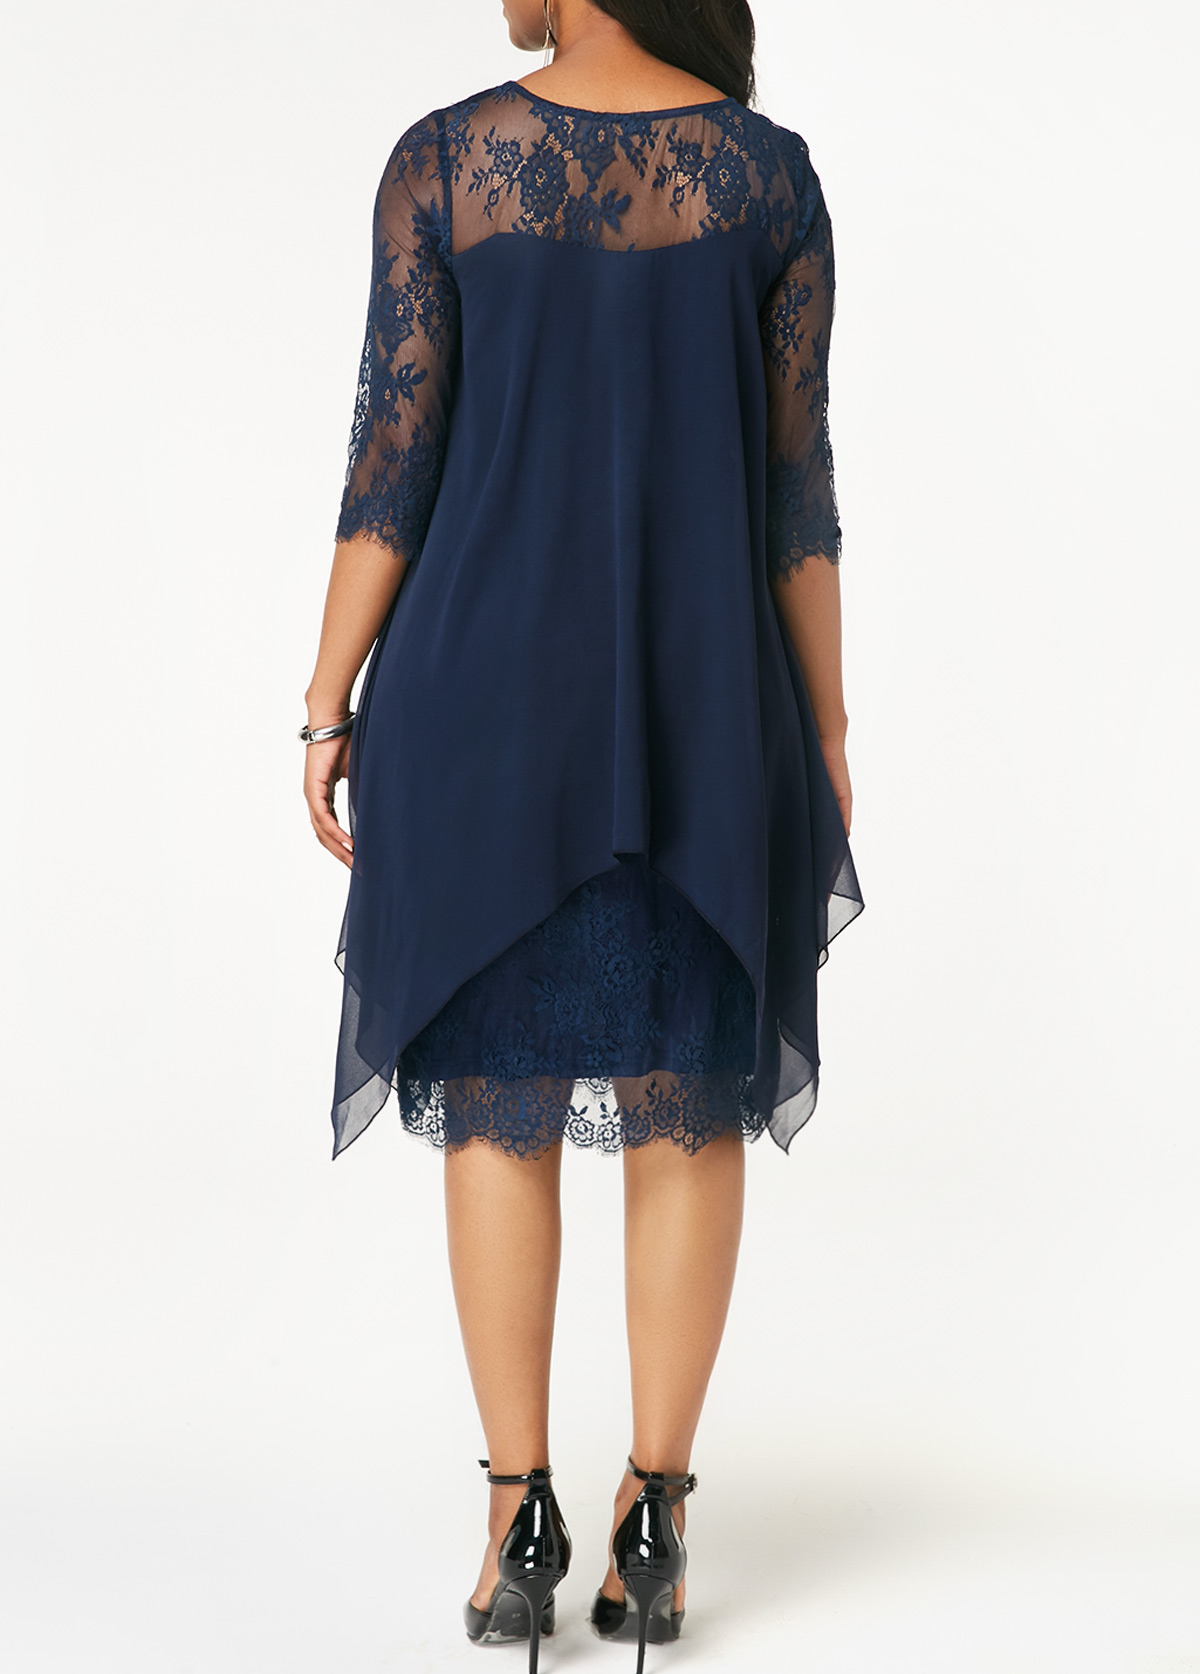 022a3aa9ea9 Three Quarter Sleeve Chiffon Overlay Navy Lace Dress. AddThis Sharing  Buttons. Share to Facebook Share to Pinterest